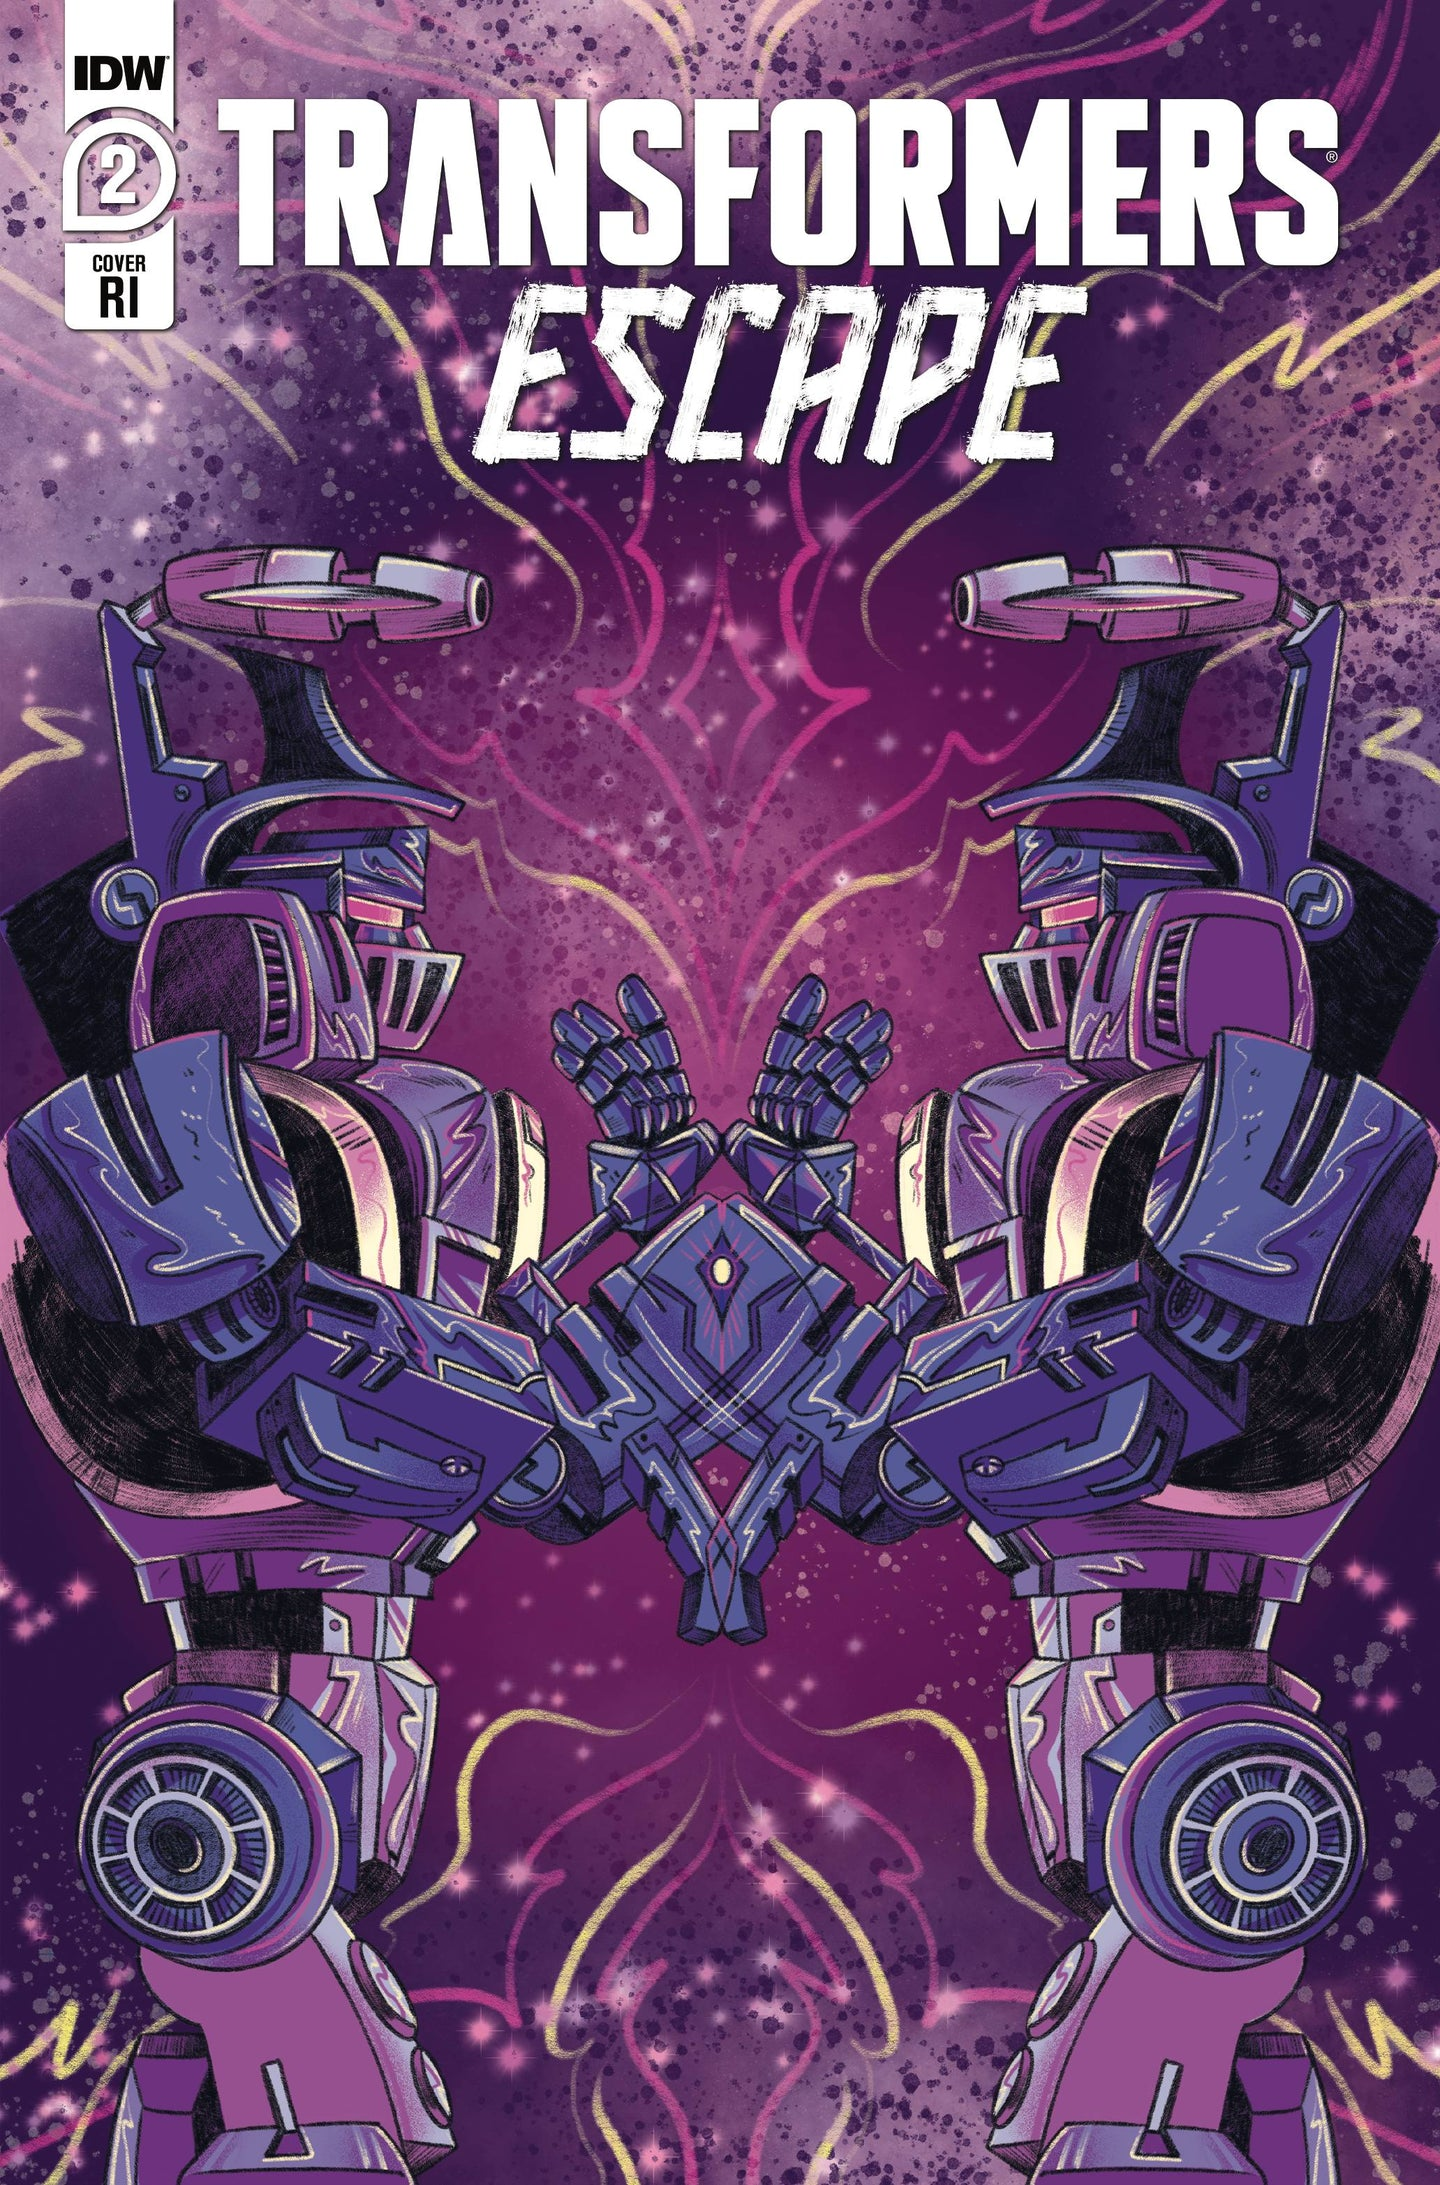 TRANSFORMERS ESCAPE #2 (OF 5) 1:10 RATIO NICOLE GOUX VARIANT CVR^